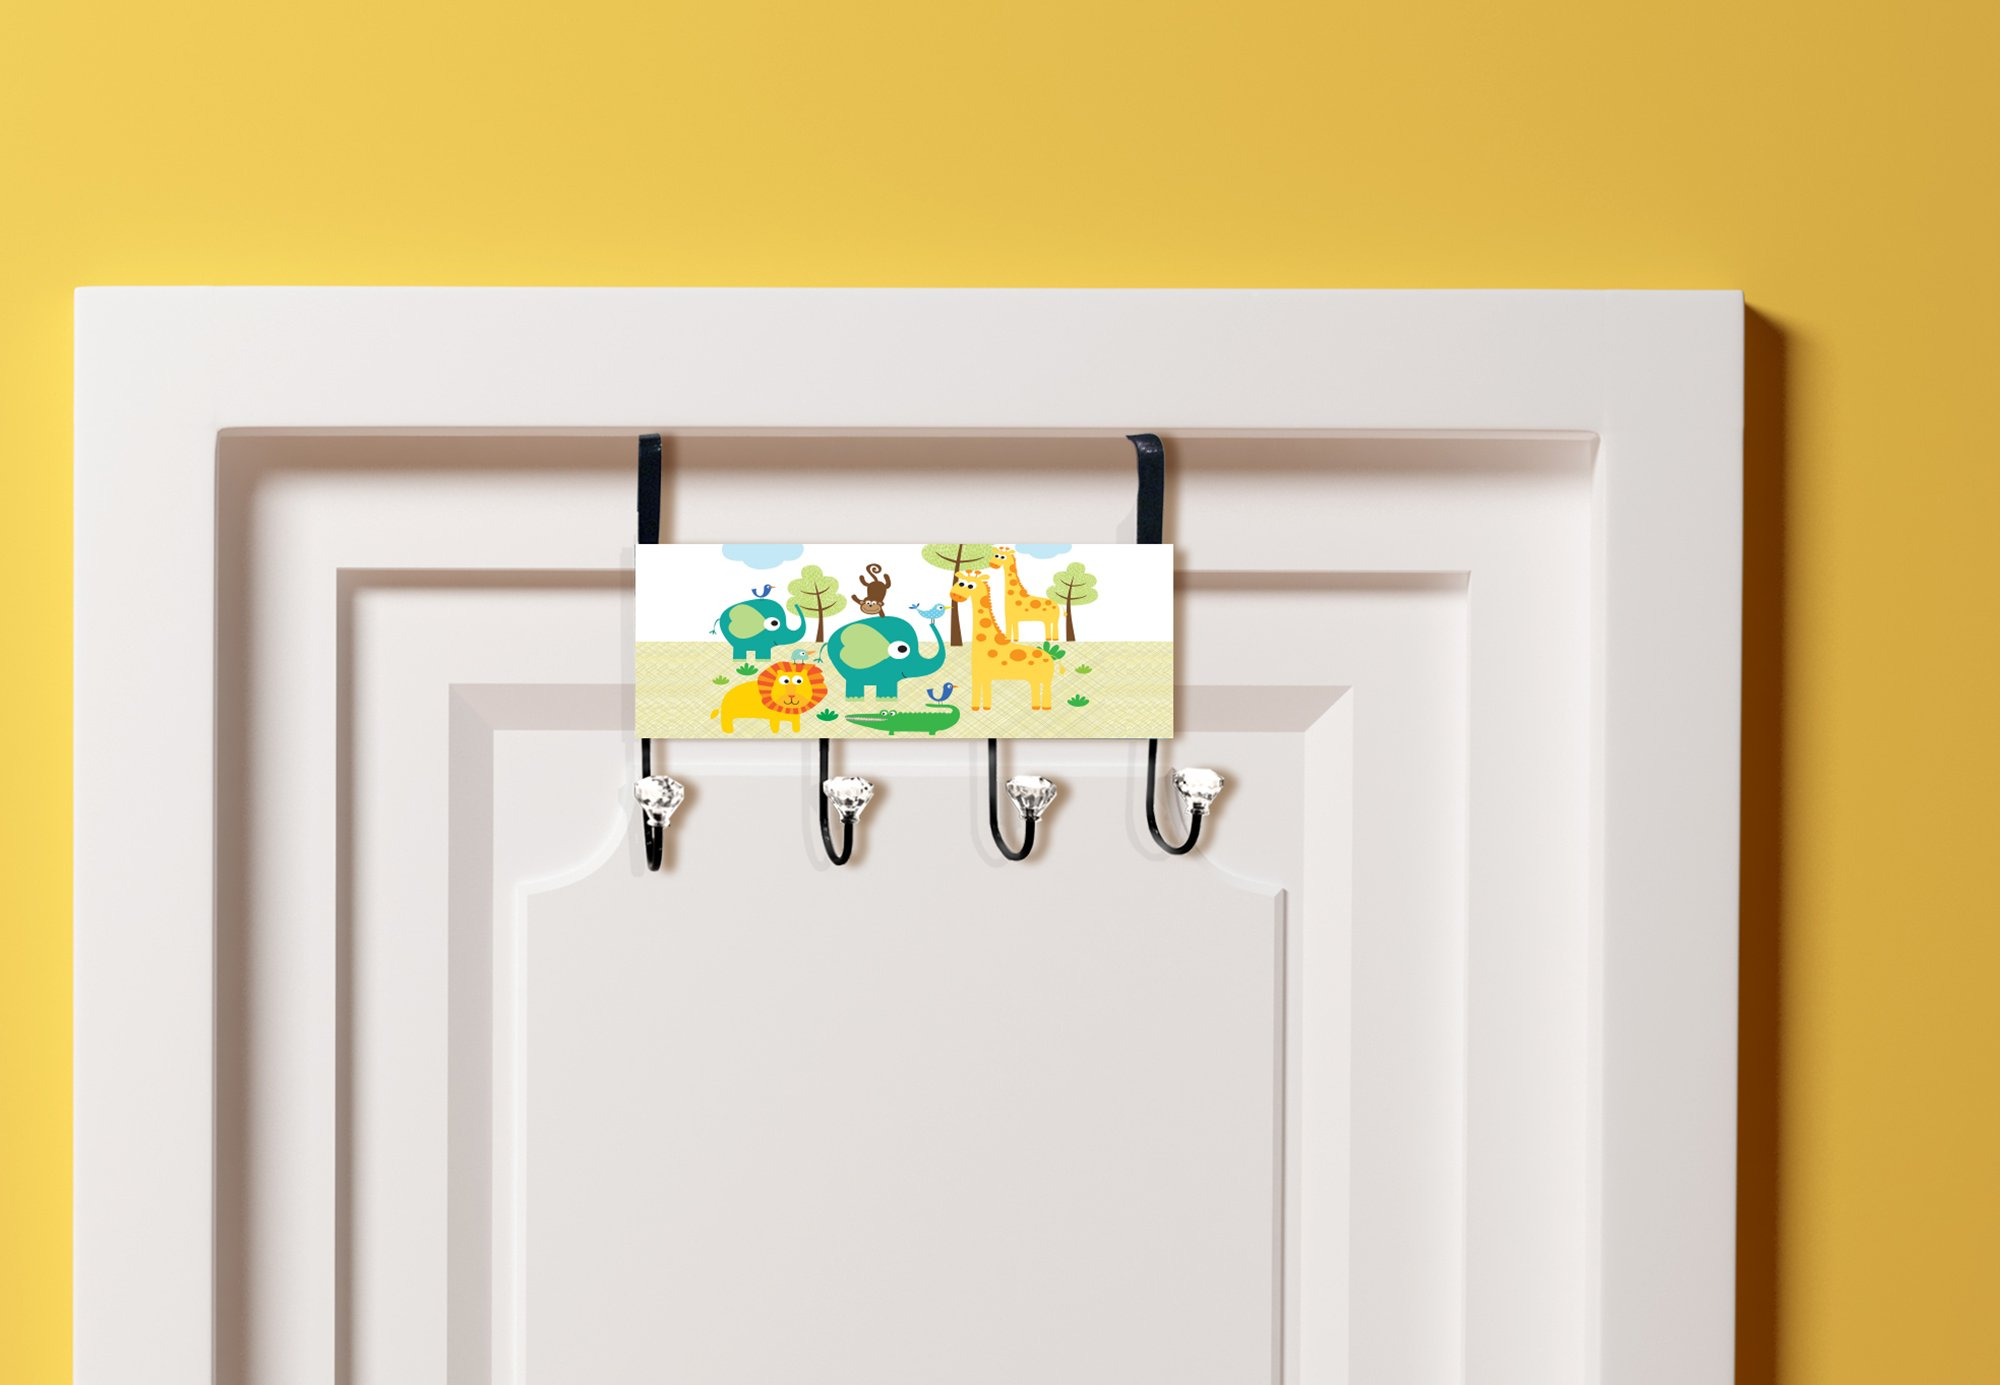 Stupell Home Décor Safari Animals Over The Door Hanger, 12 x 10.5 x 2, Proudly Made in USA by The Kids Room by Stupell